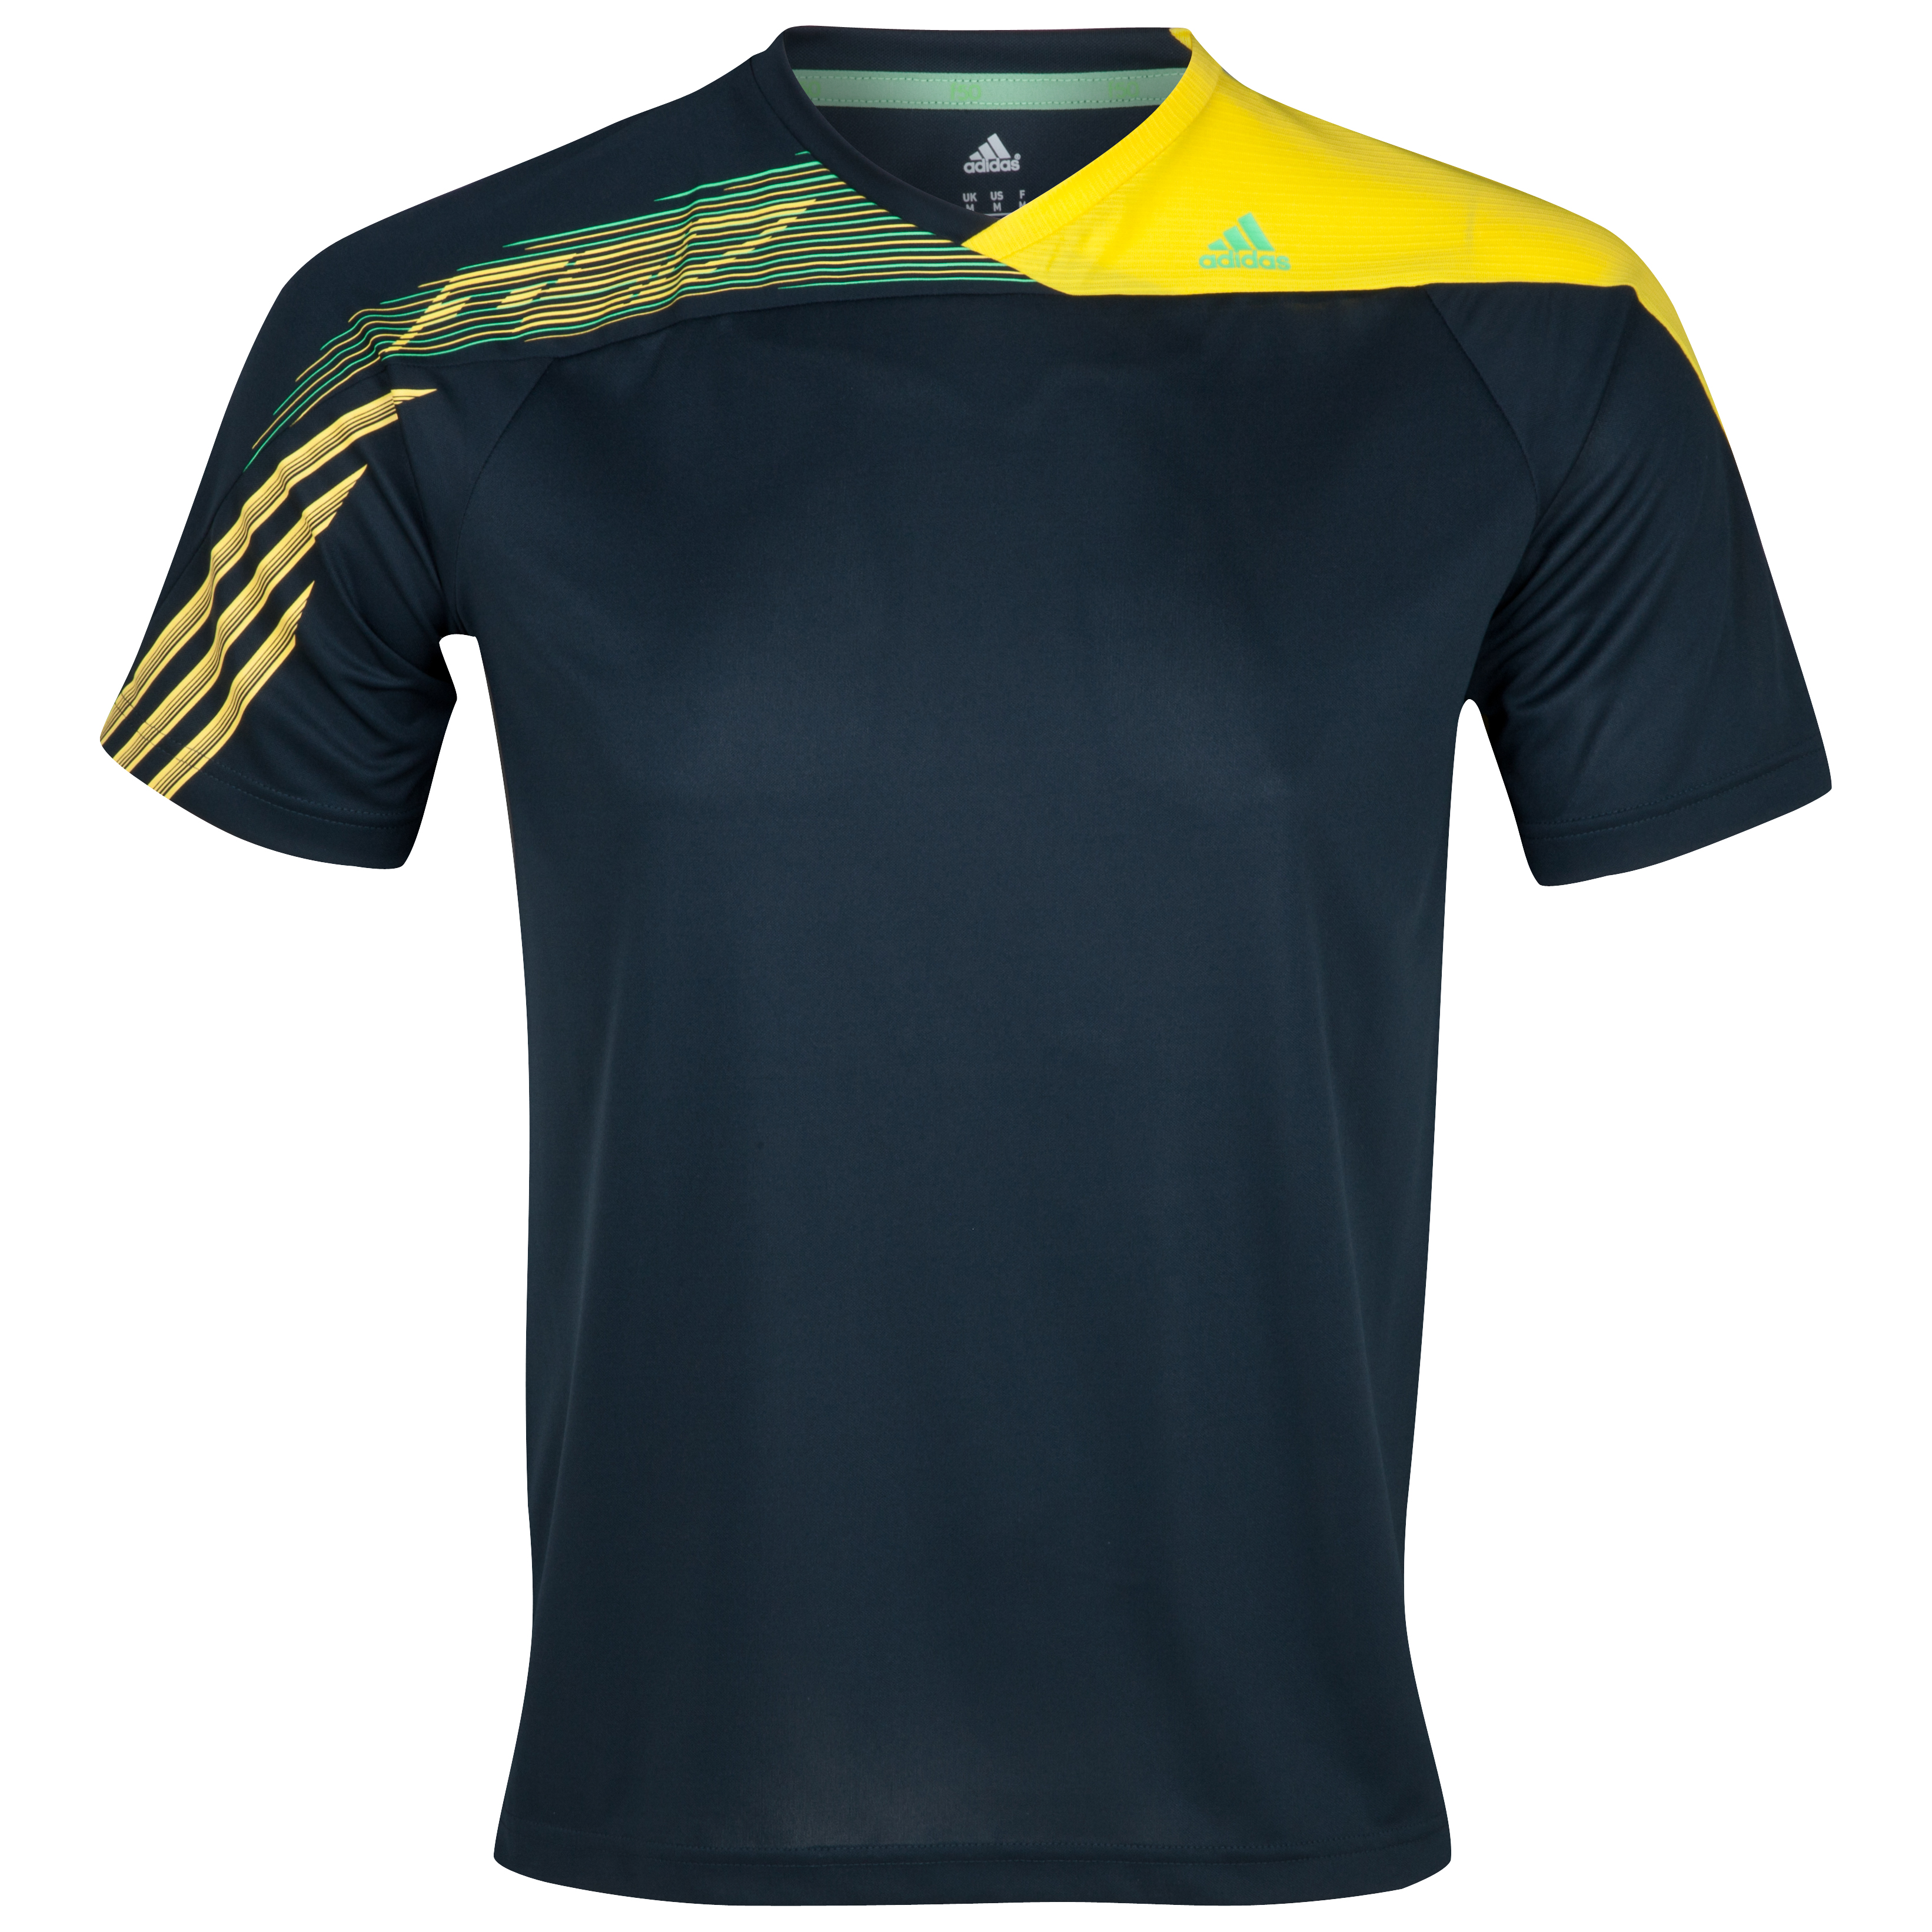 adidas F50 Climalite Tee - Tech Onix /Vivid Yellow /Green Zest